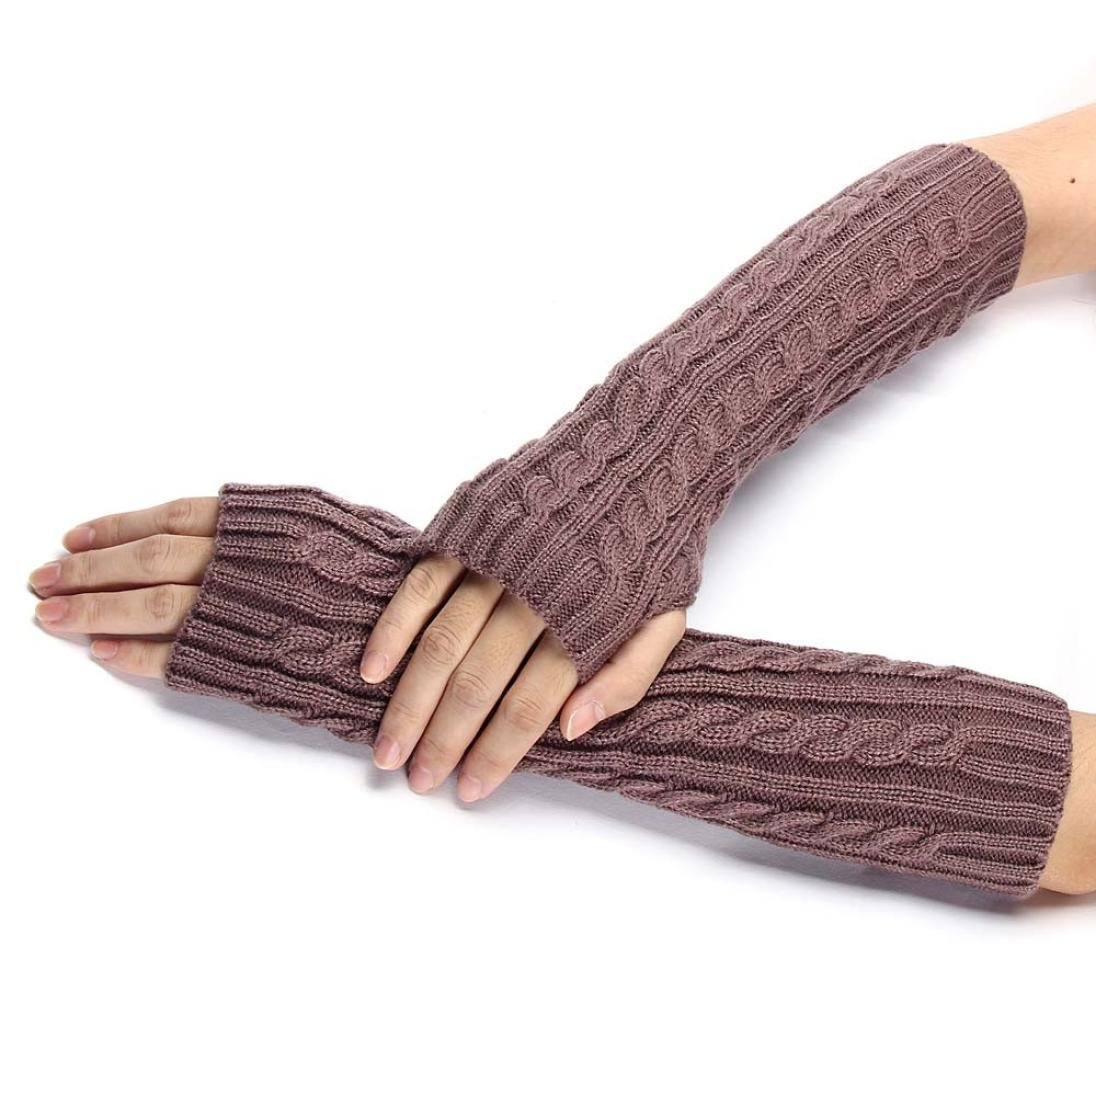 Changeshopping Knitted Arm Fingerless Winter Gloves Unisex Soft Warm Mitten (A) changeshopping 1 Changeshopping510